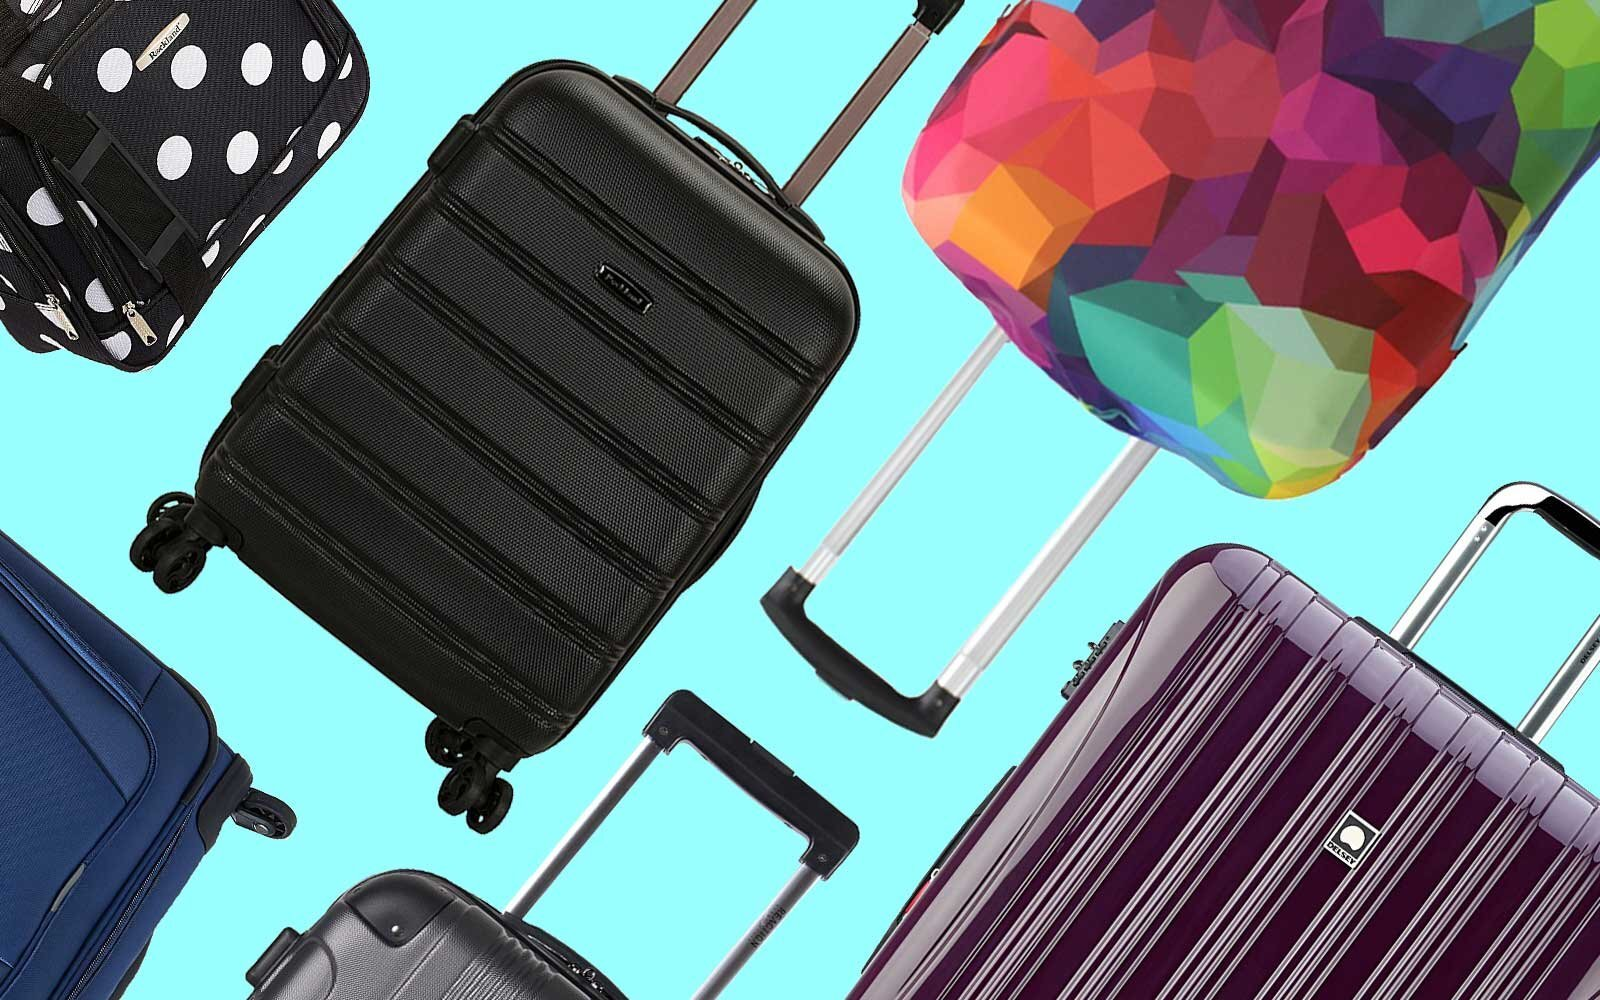 da97eb375 Amazon's Best-selling Suitcases Are All Less Than $150 | Travel + ...